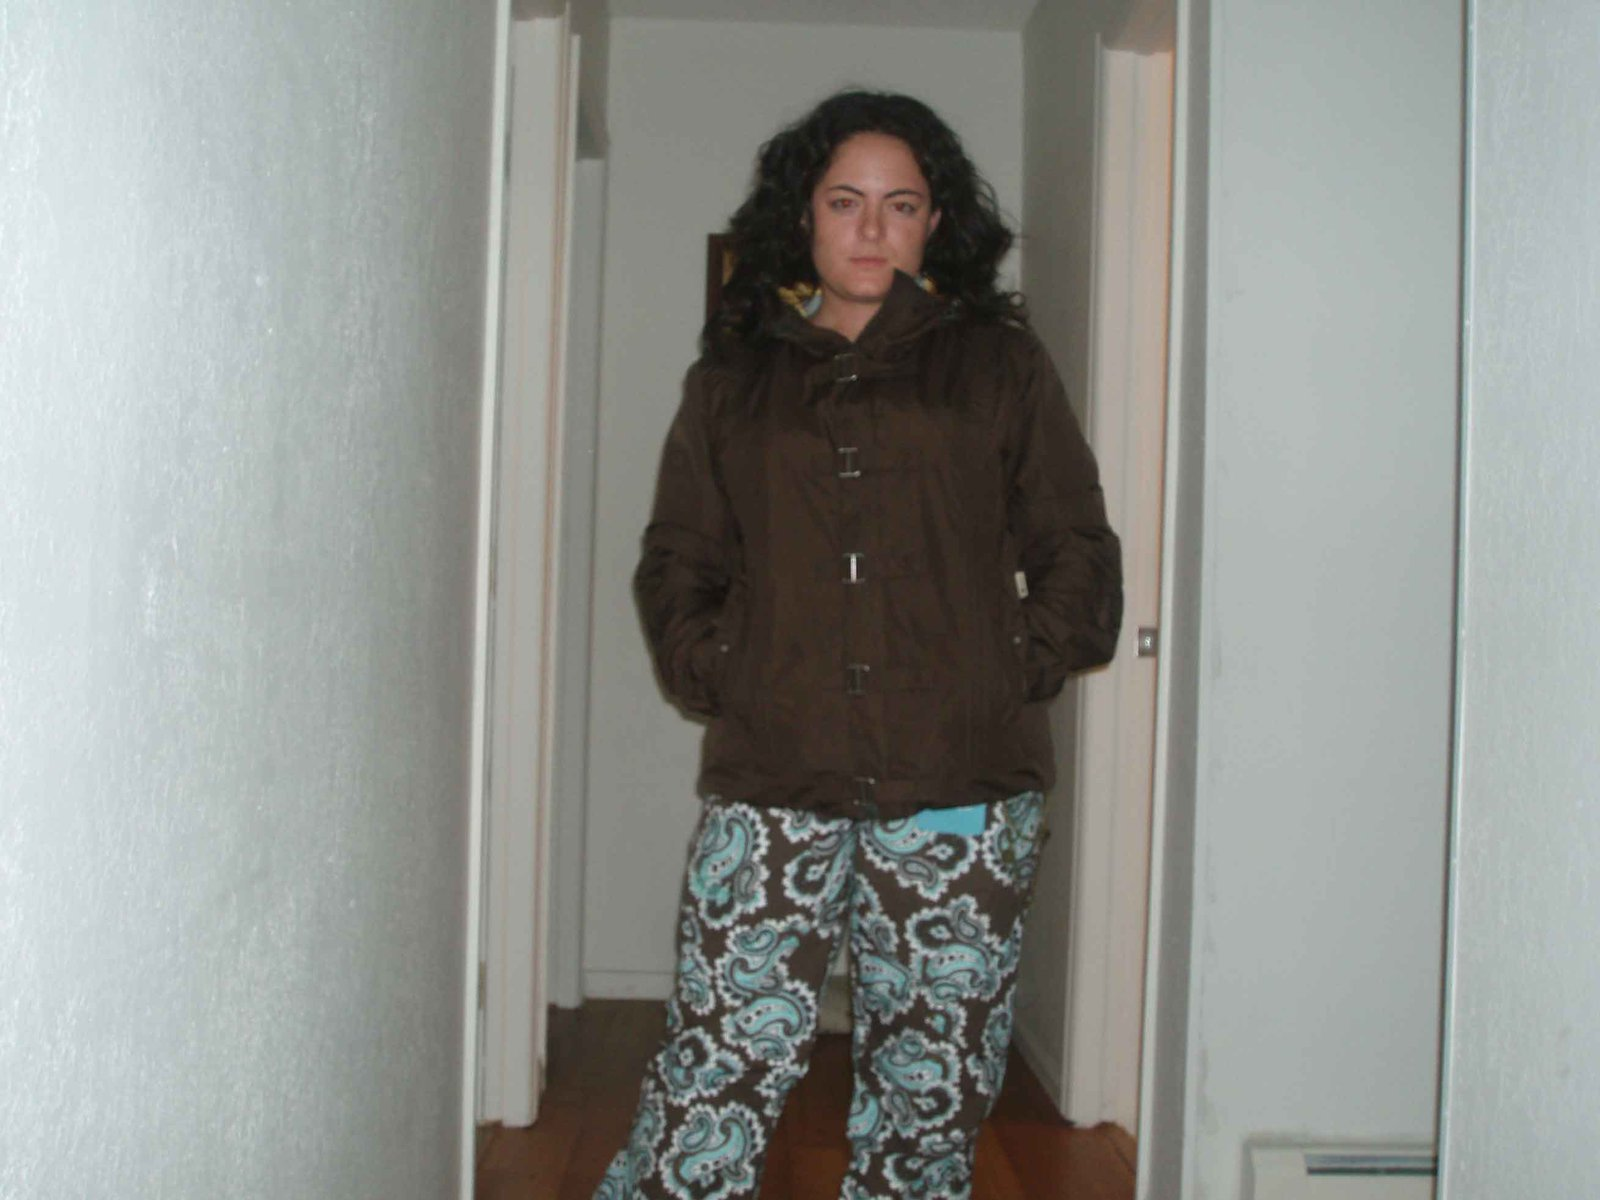 Me in my new ski outfit